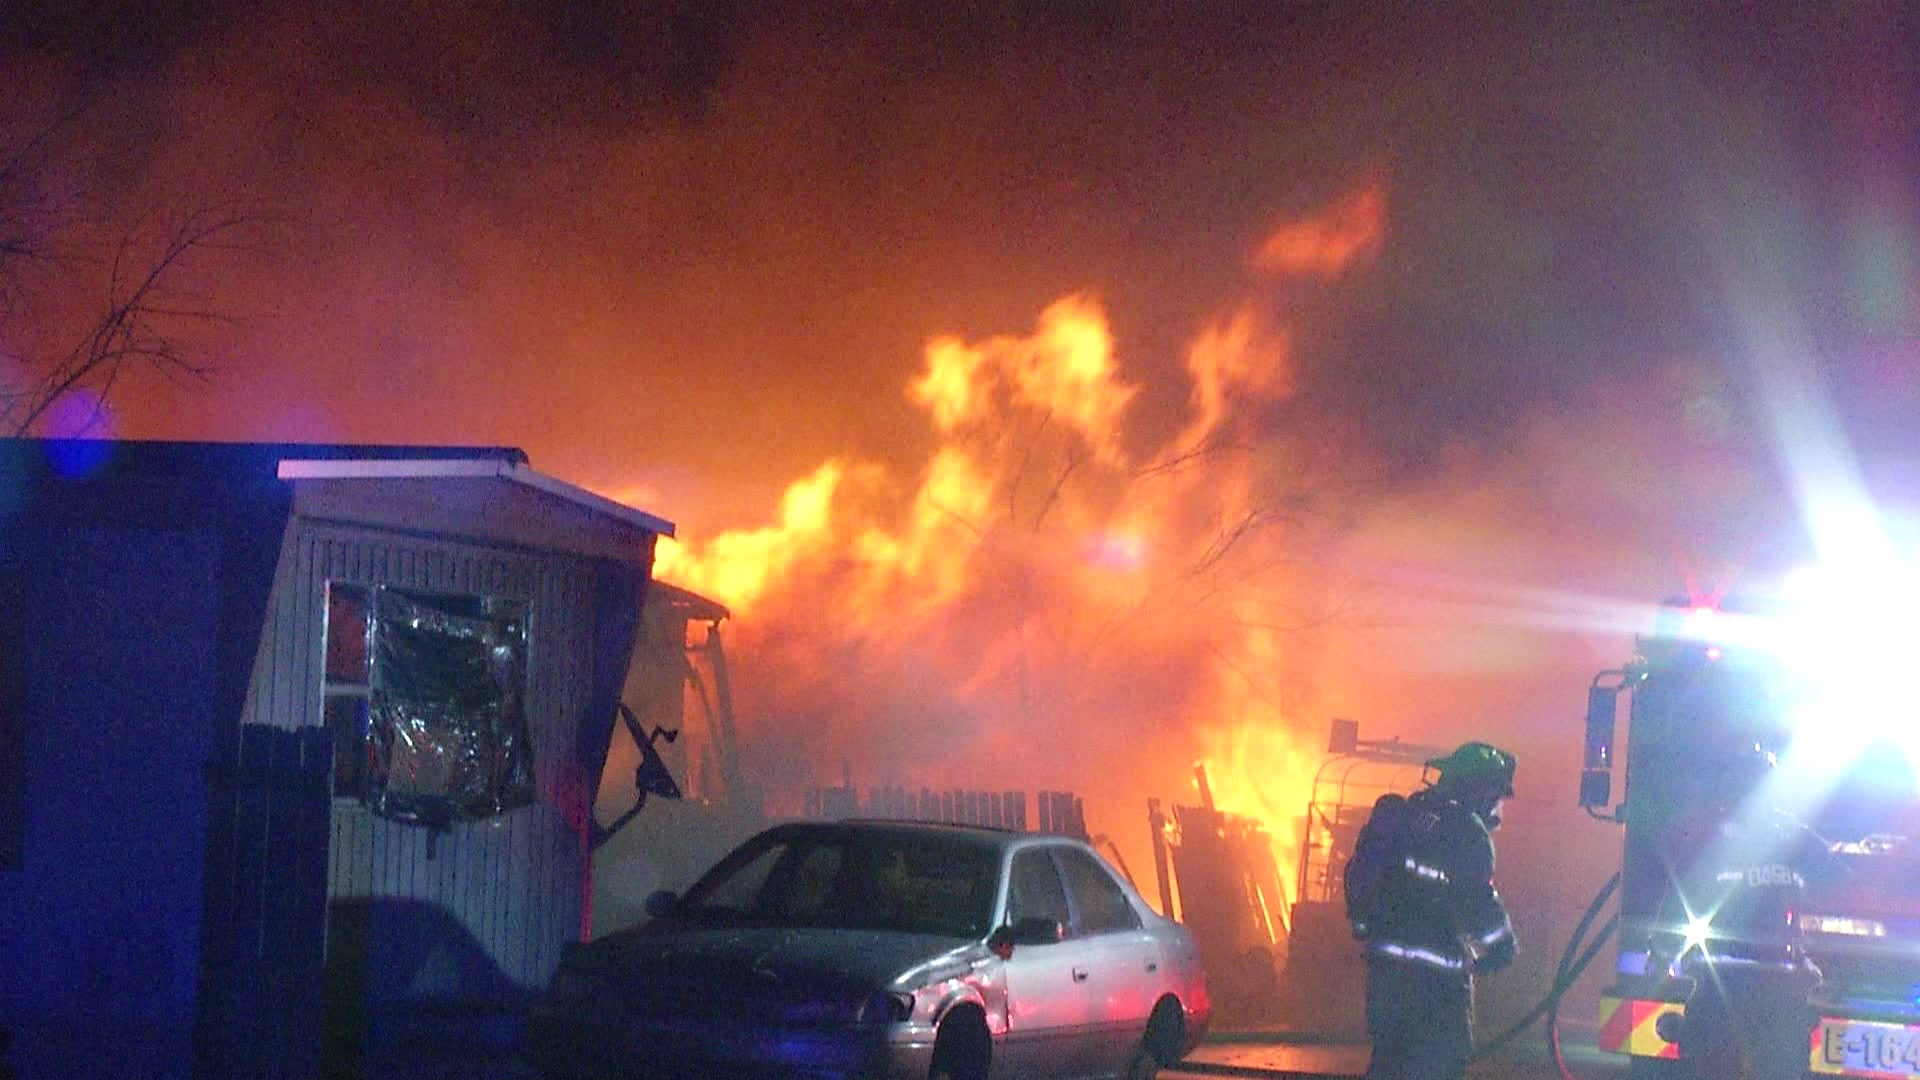 Arson believed to be cause of multiple-trailer fire, person of interest ID'd, officials say